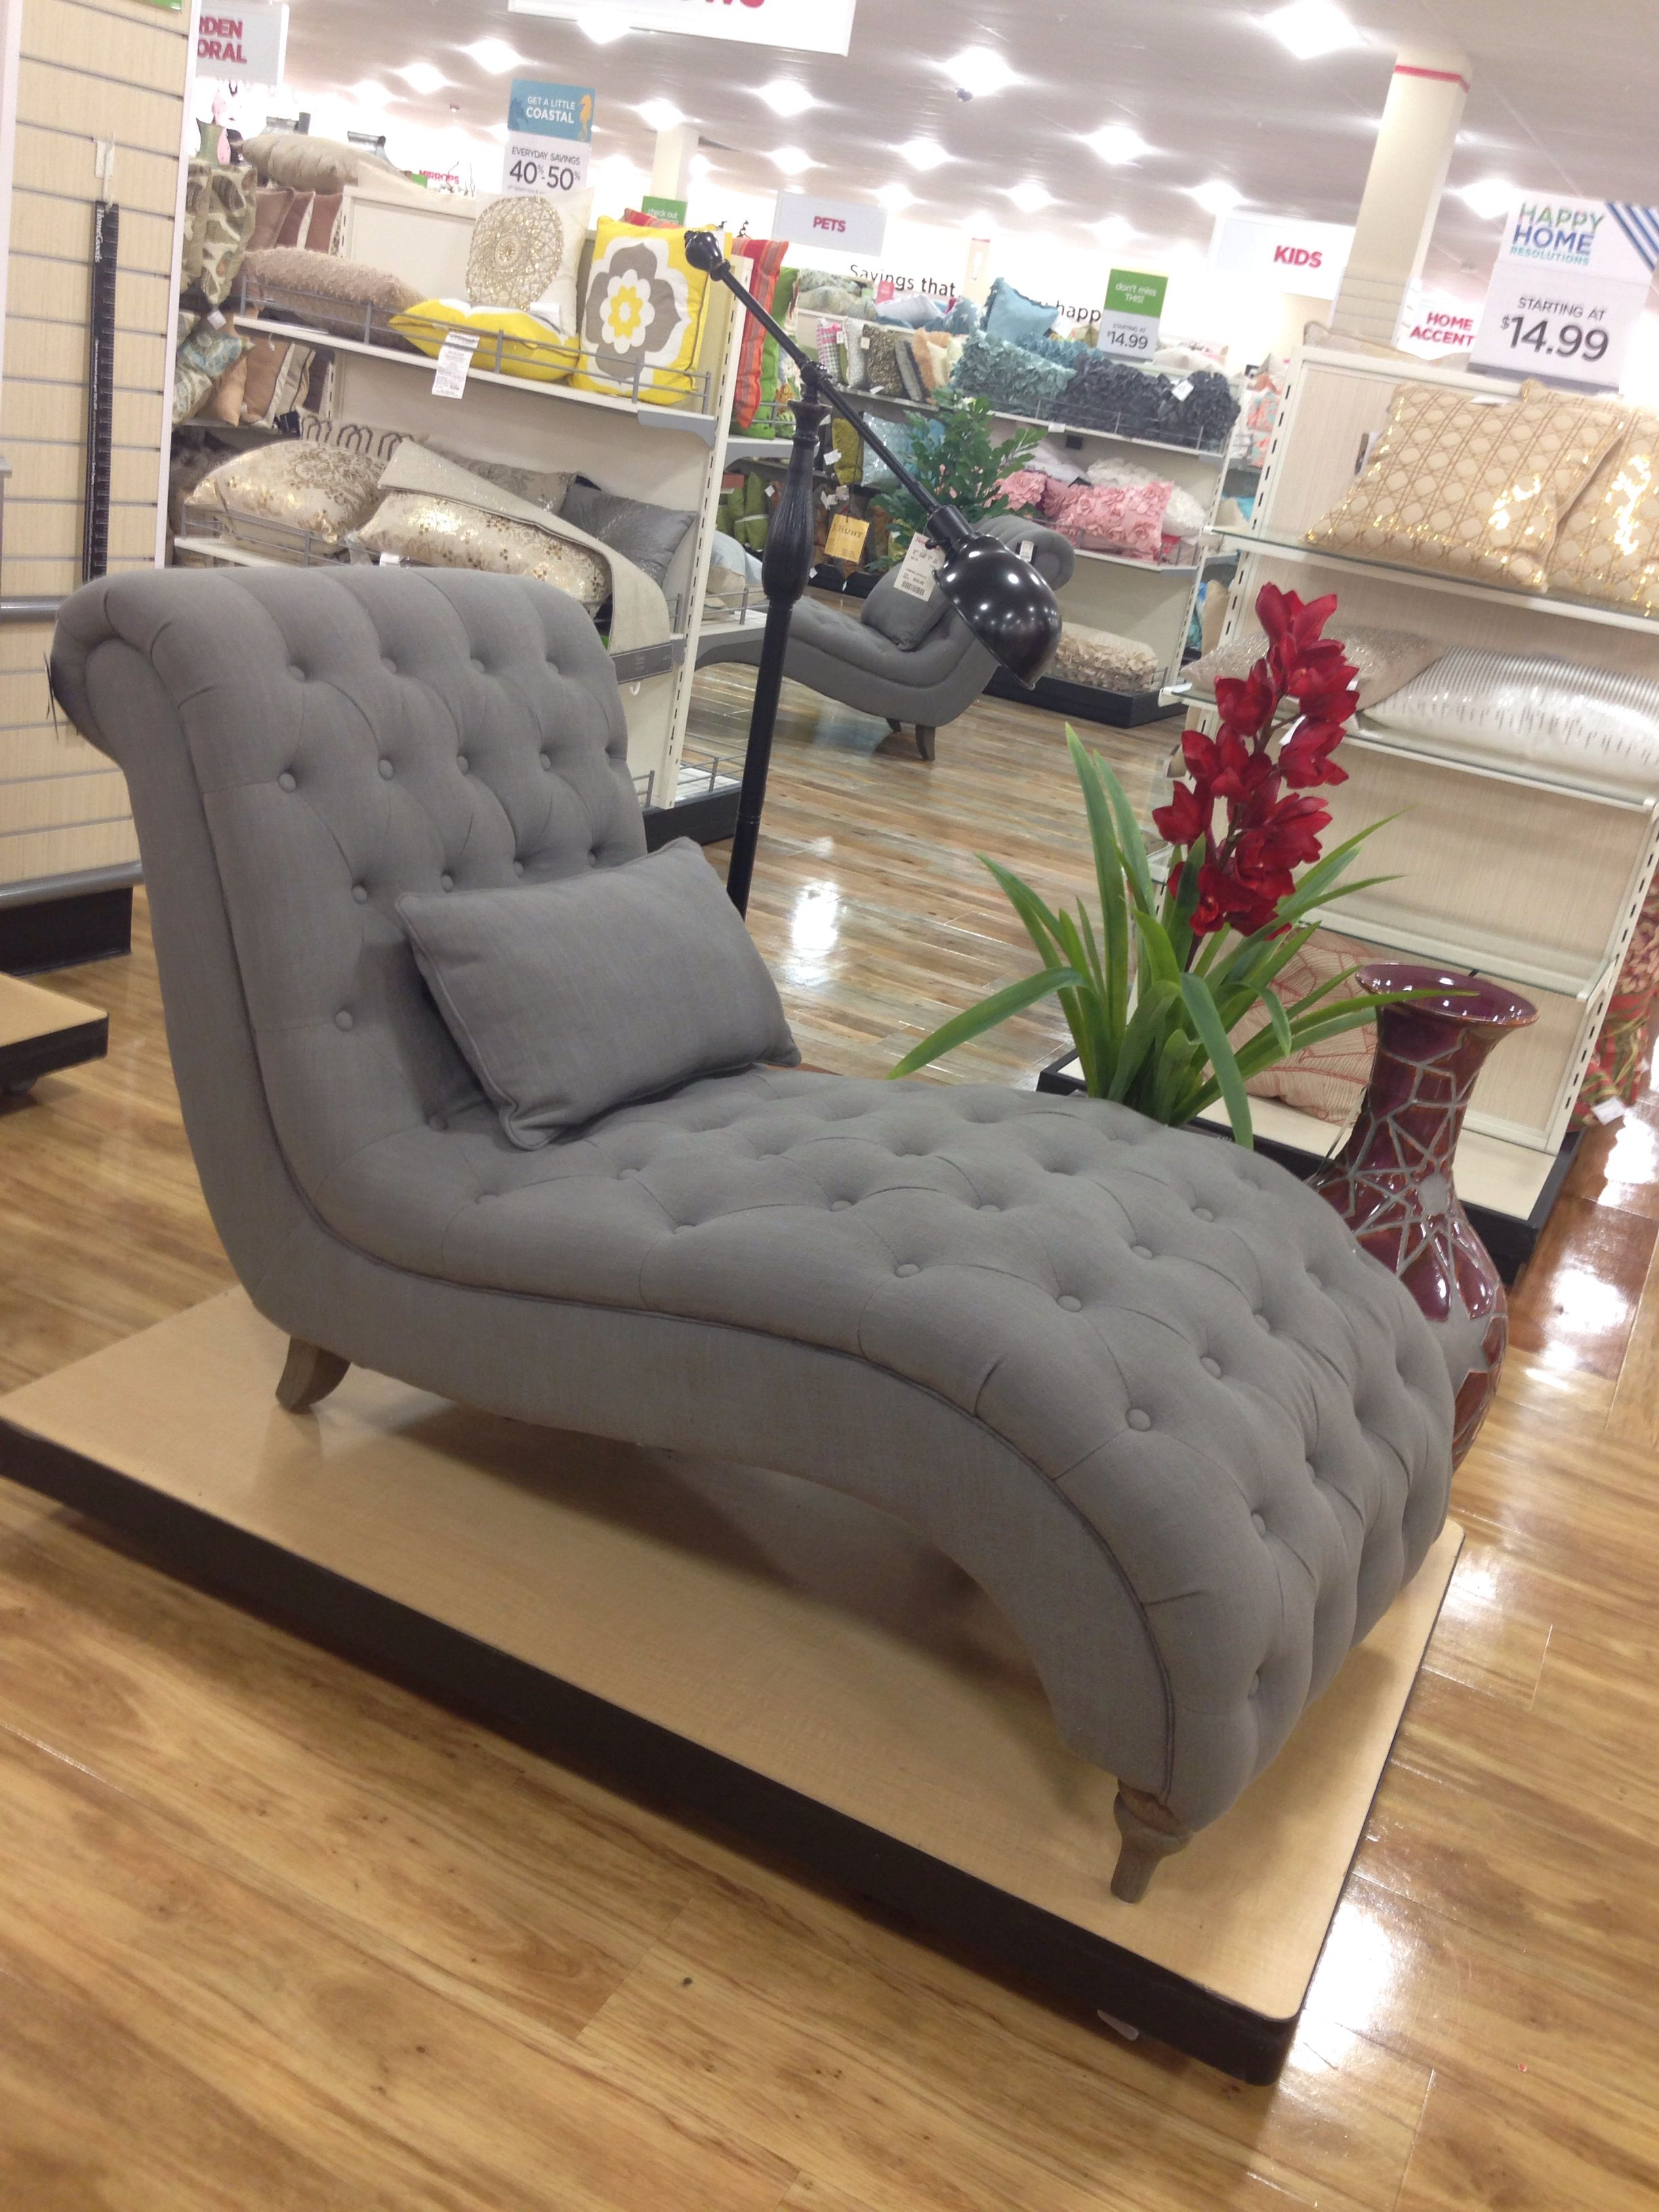 alluring goods com appealing home walmart improvement your decor furniture as loveseat trend with ideen